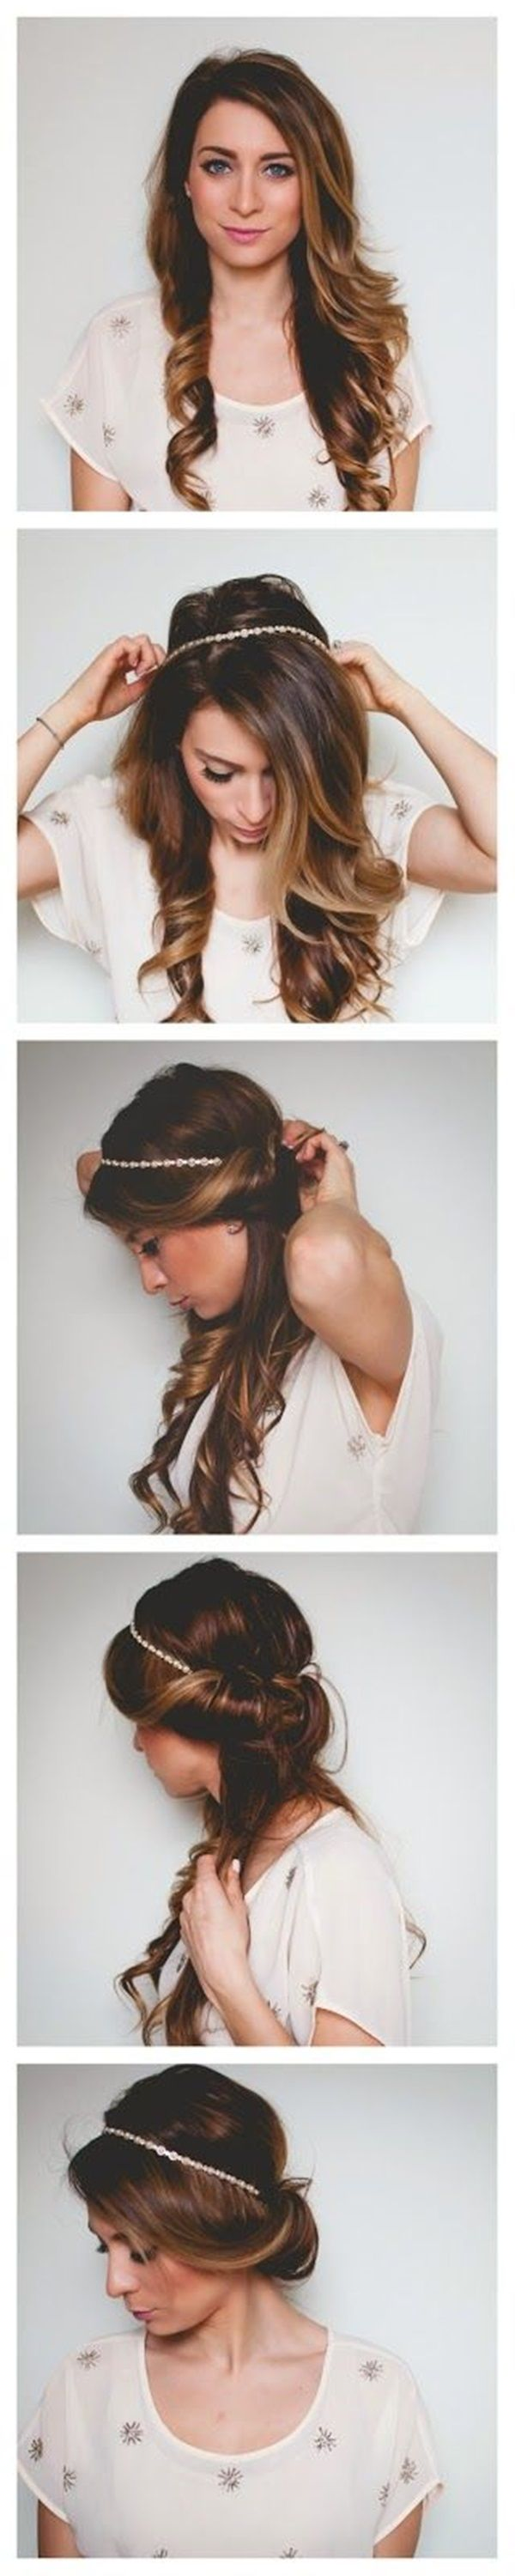 best hair images on pinterest cute hairstyles casual